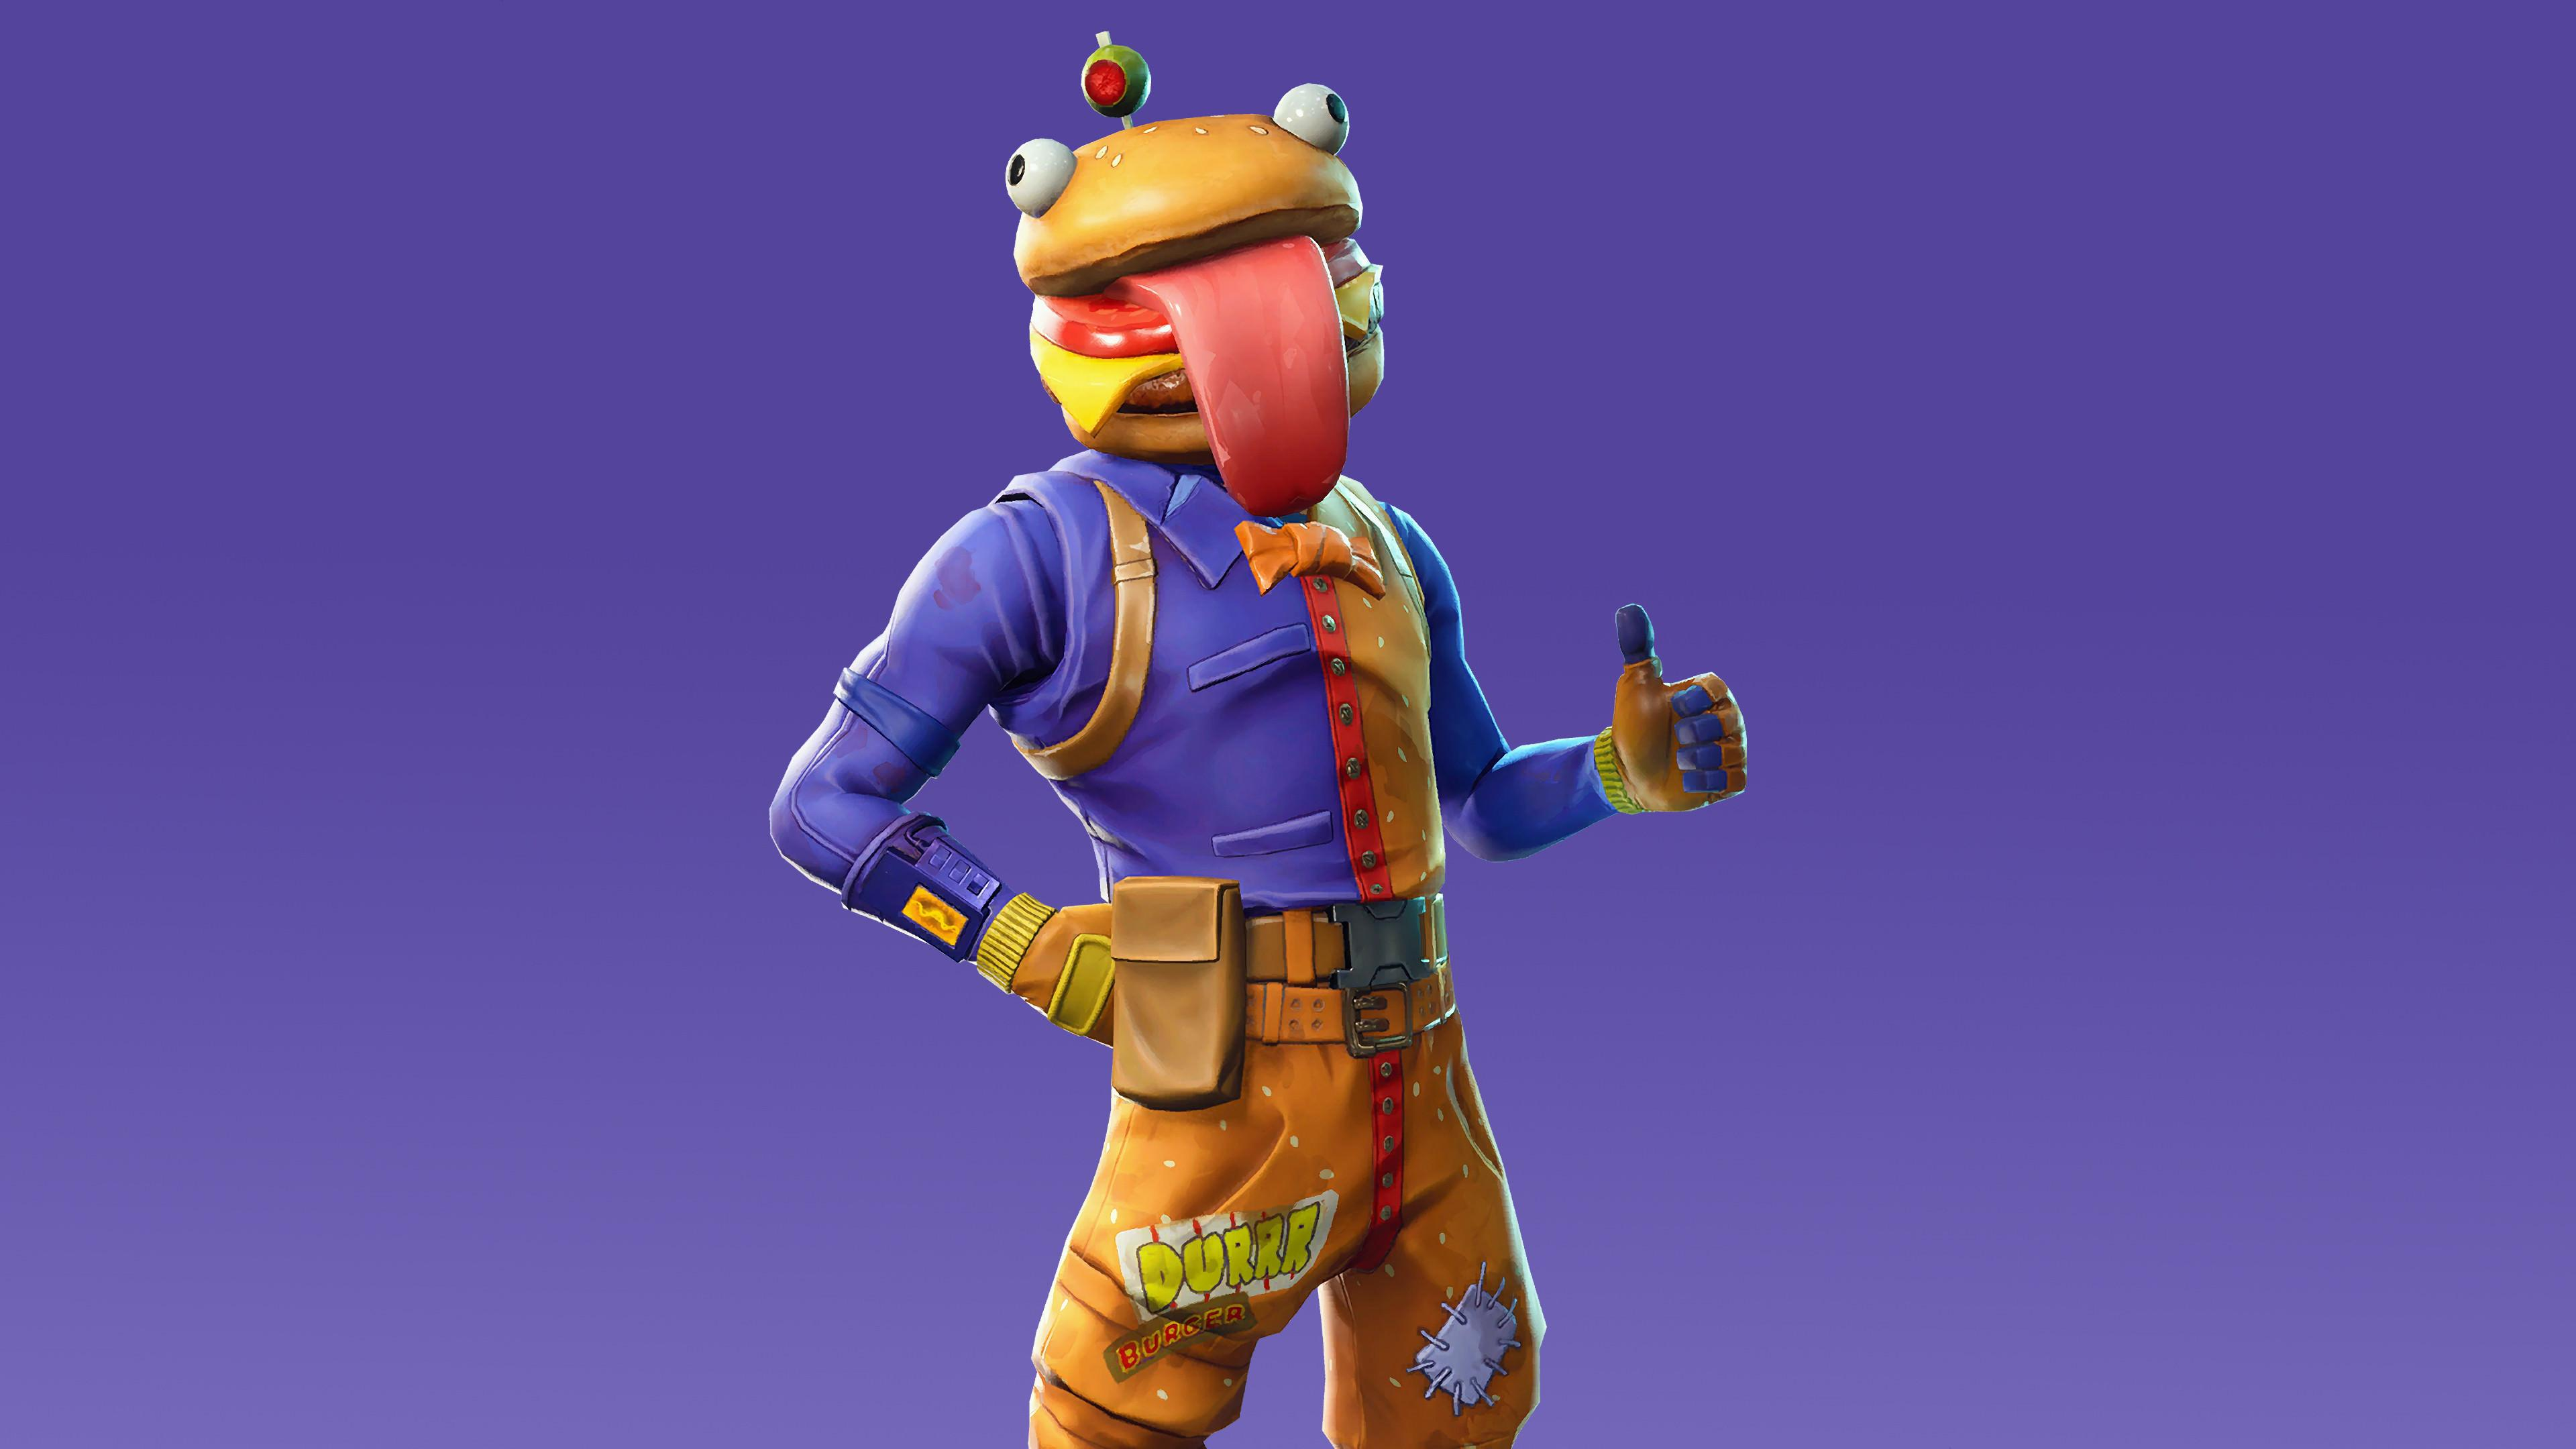 Beef Boss 4K 8K HD Fortnite Battle Royale Wallpaper